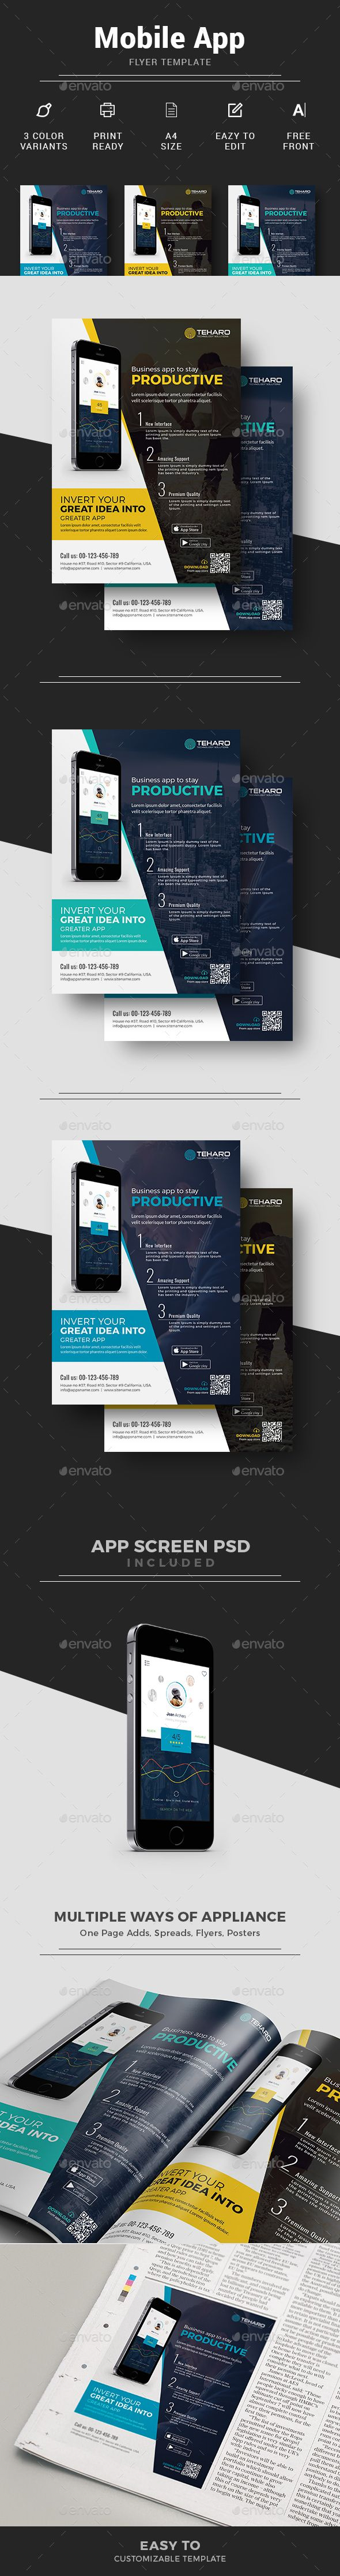 13 best best mobile app flyer designs images on pinterest flyer